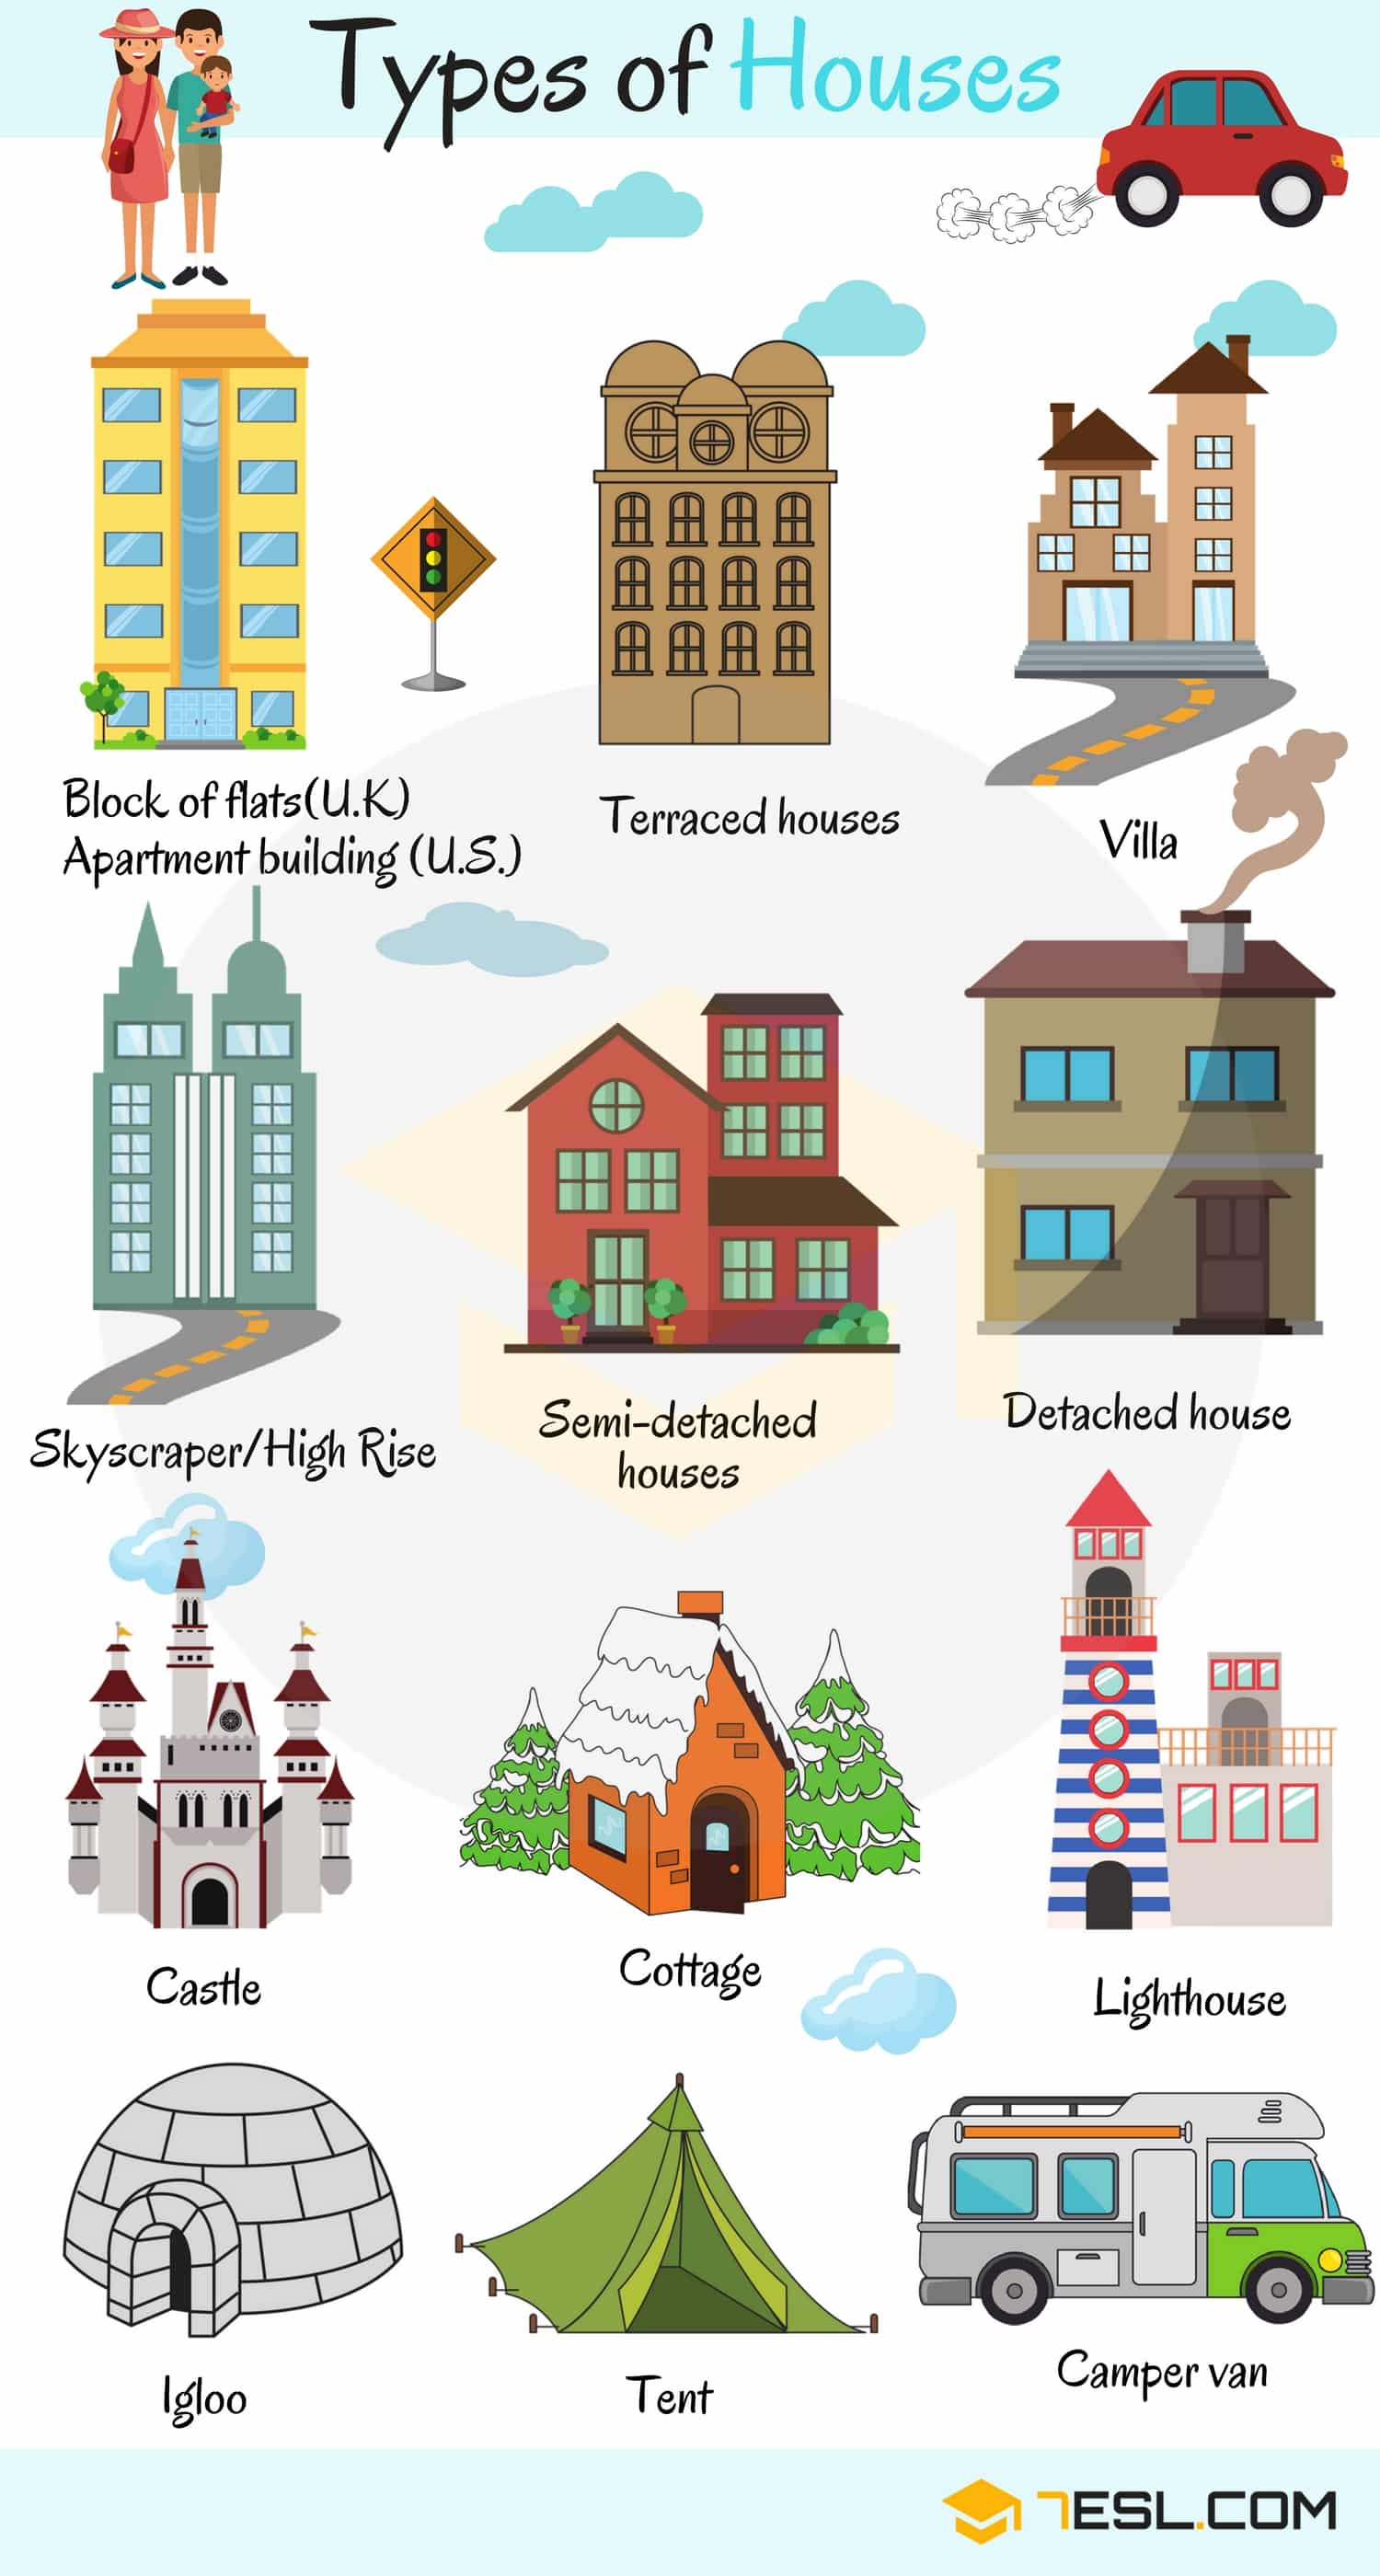 hight resolution of Different Types of Houses: List of House Types with Pictures • 7ESL